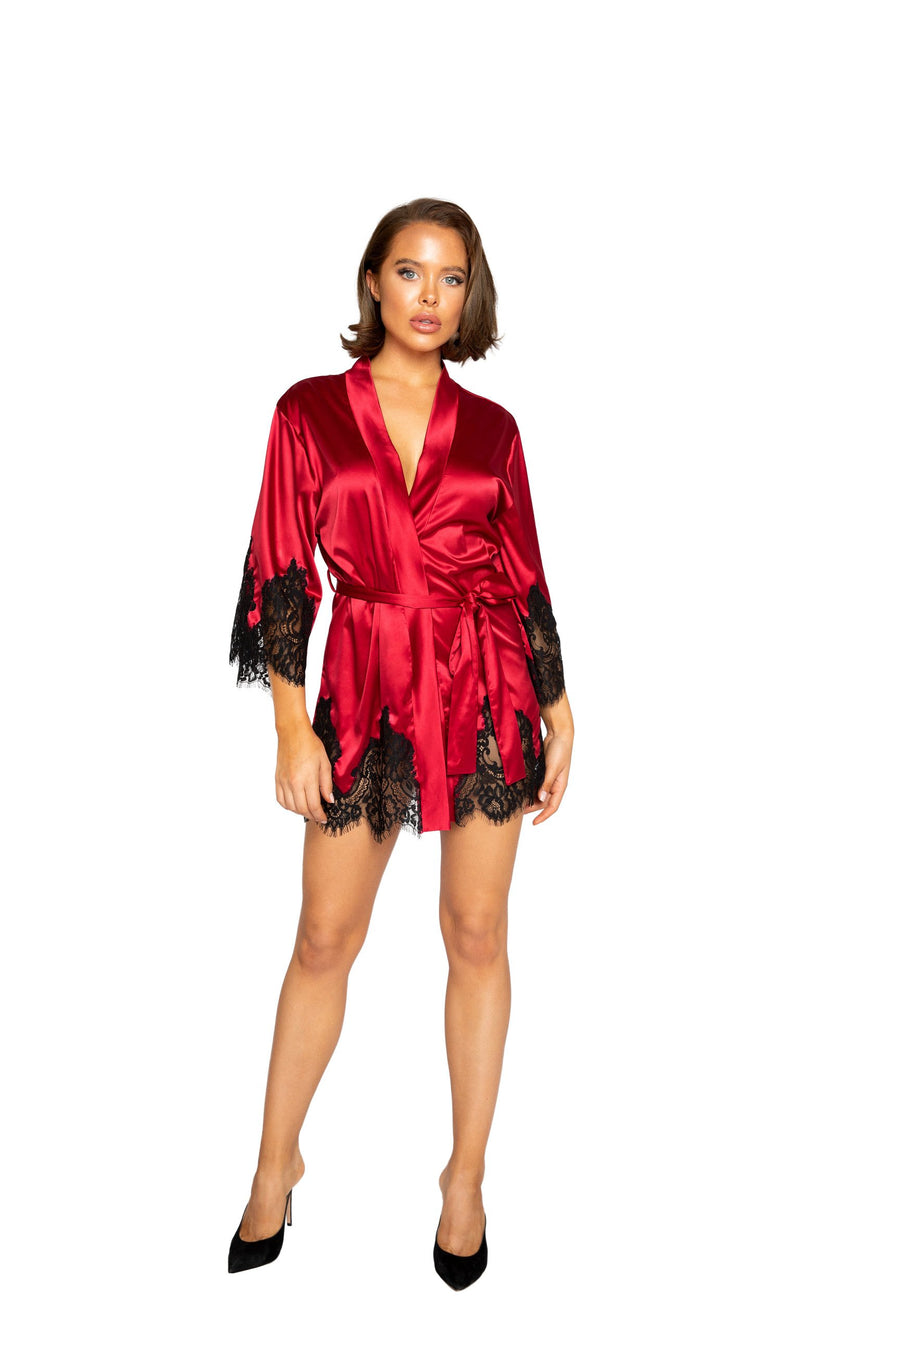 Roma Confidential LI368 Elegant Cutout Eyelash Lace Robe Elegant Red Satin Short Robe with Black Eyelash Lace Trim Cutouts on Armas and Along Bottom